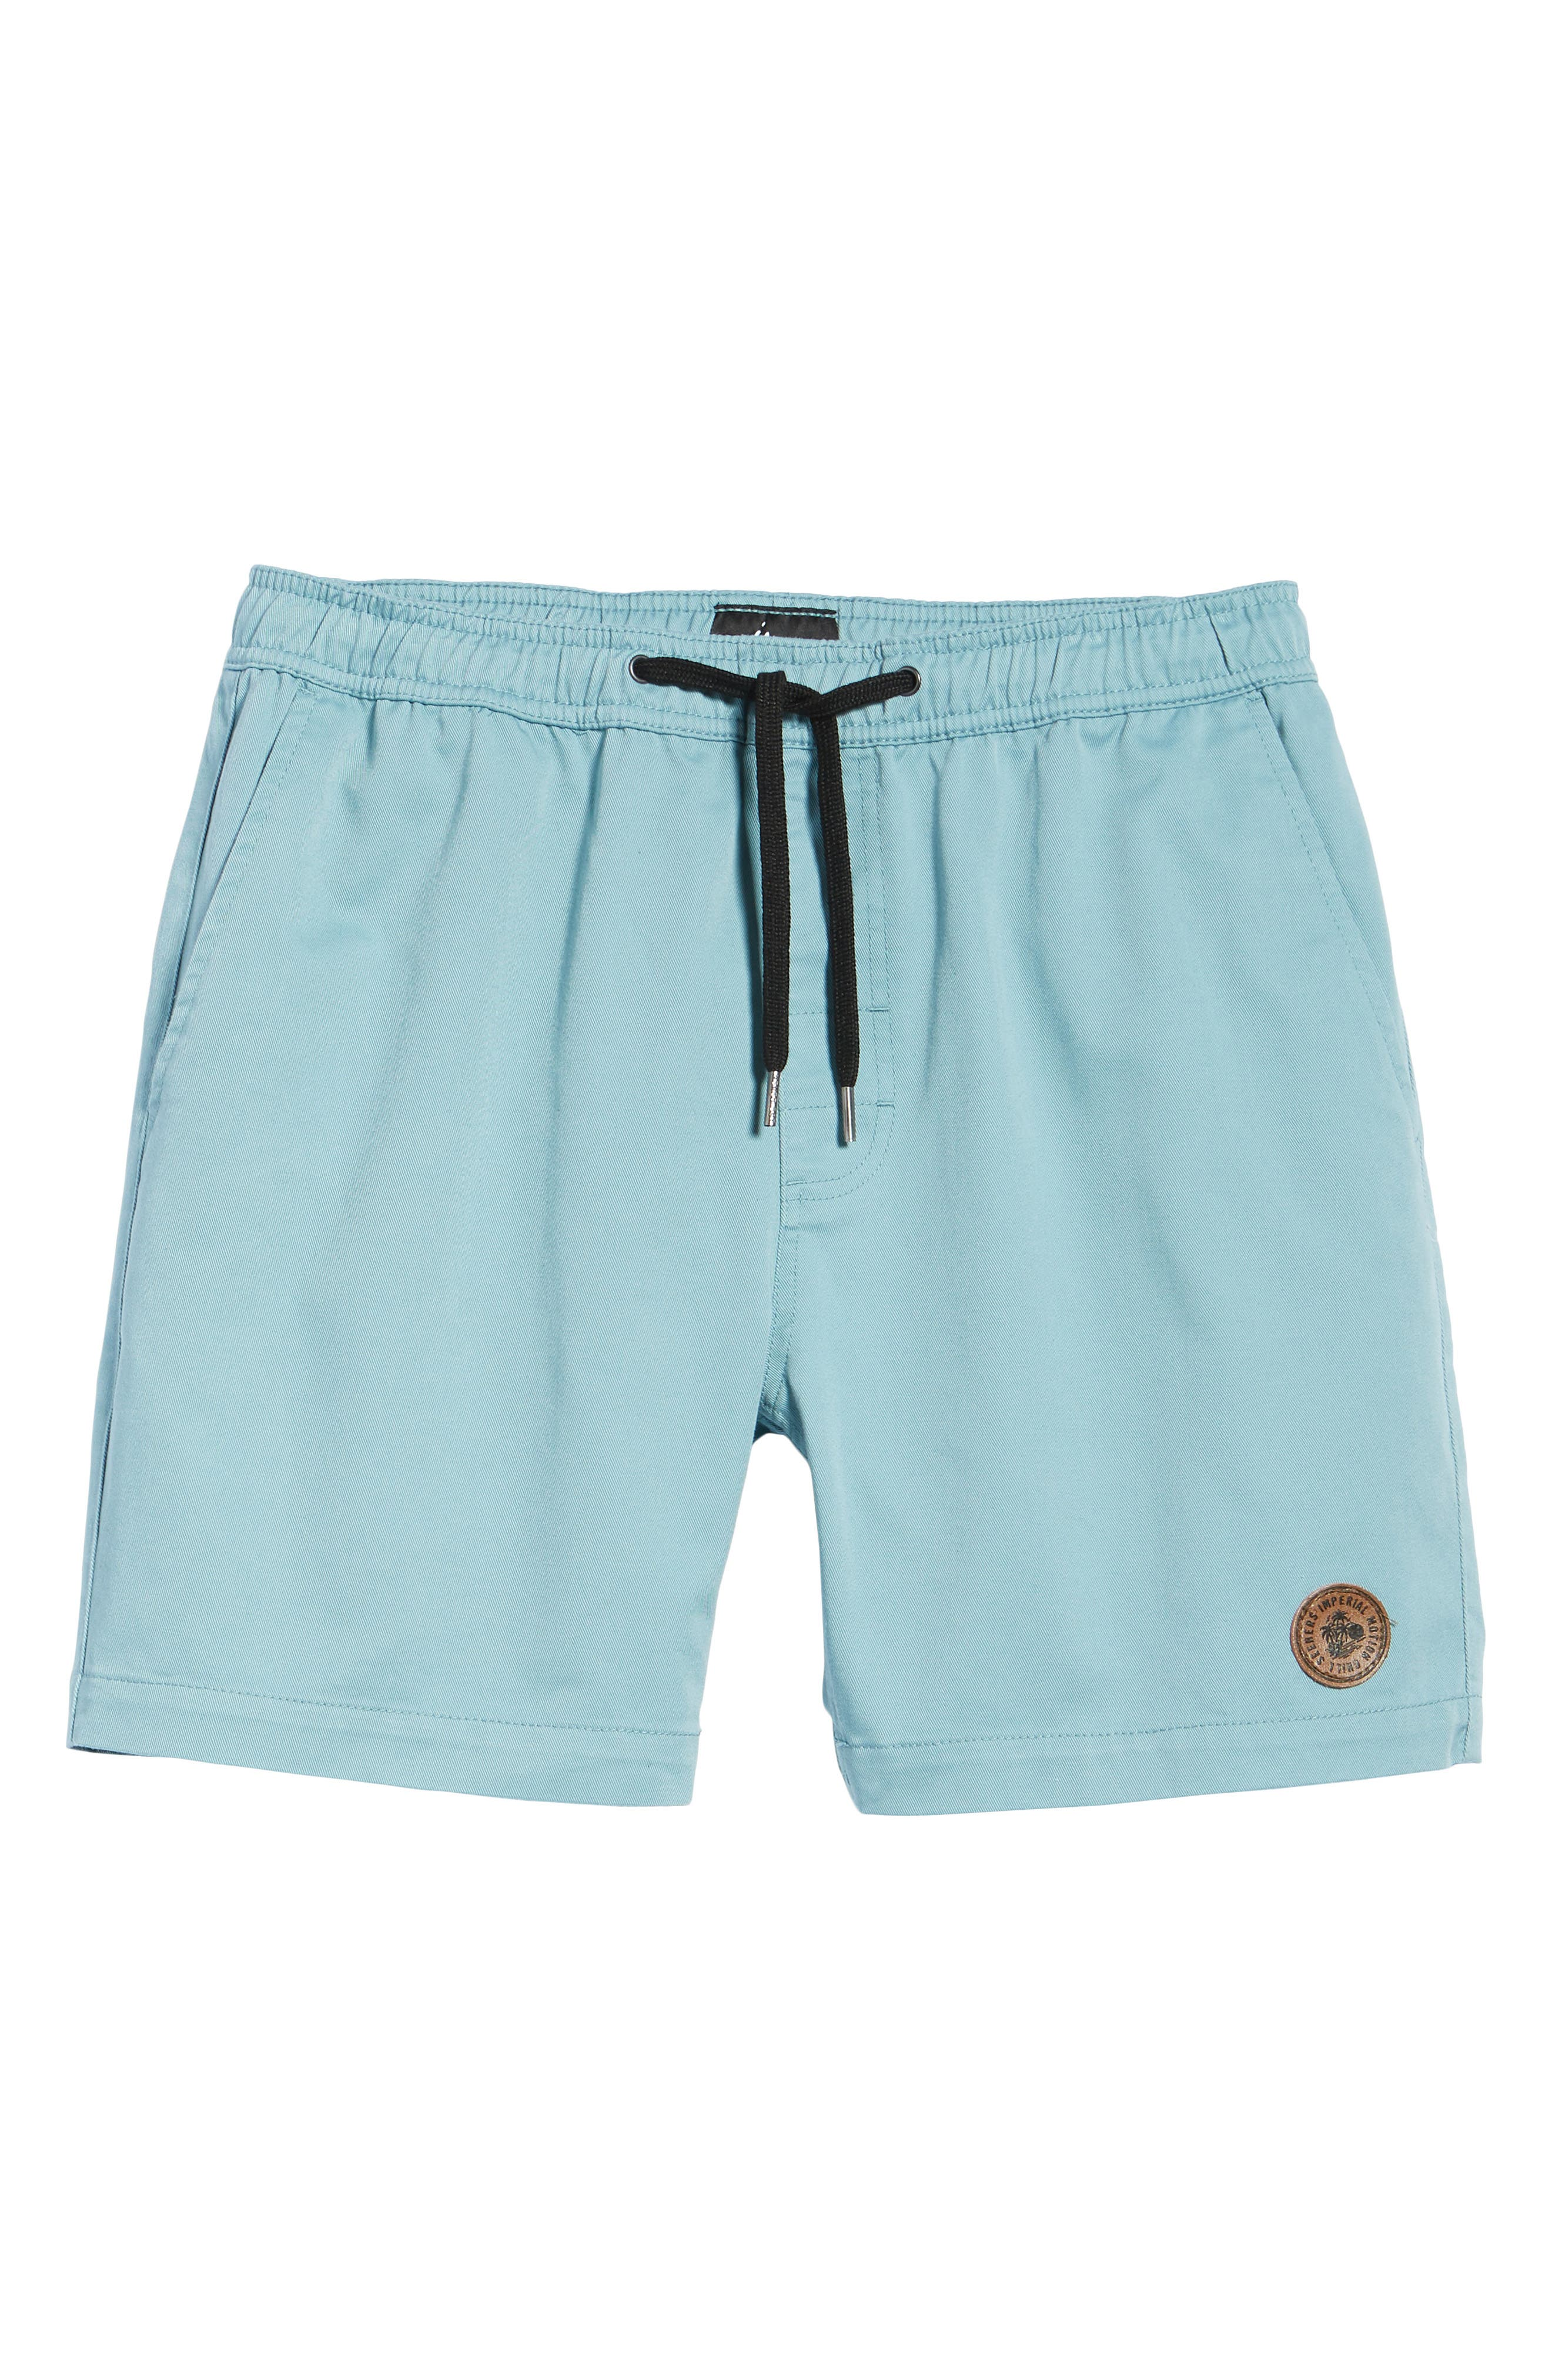 Seeker Shorts,                             Alternate thumbnail 6, color,                             Light Blue